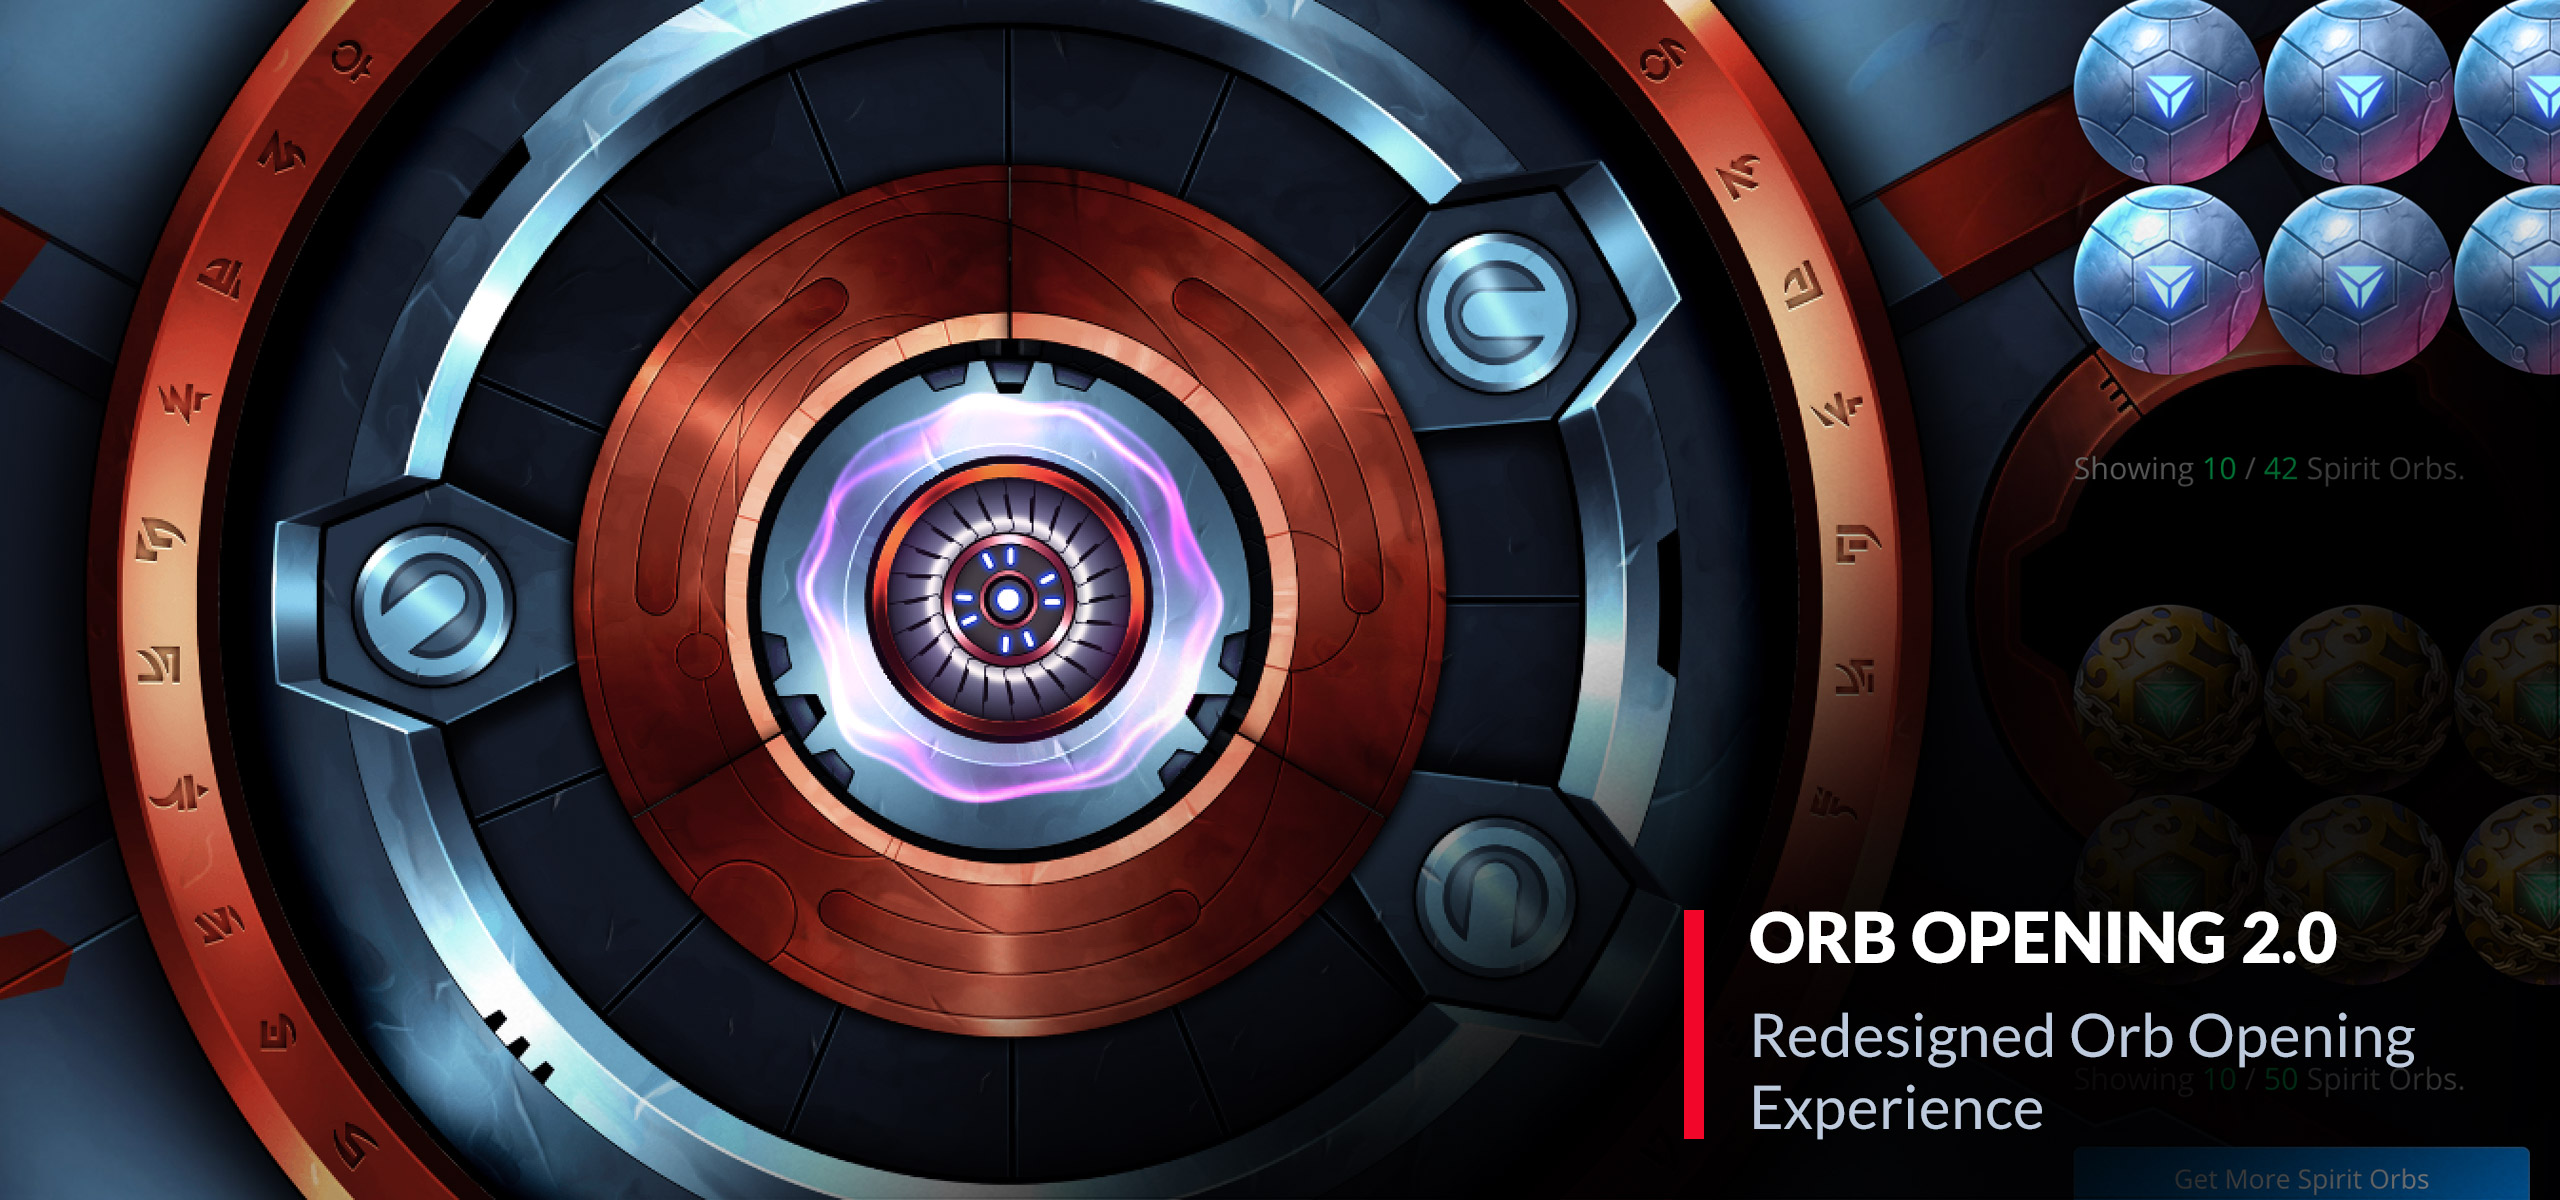 orb_opening